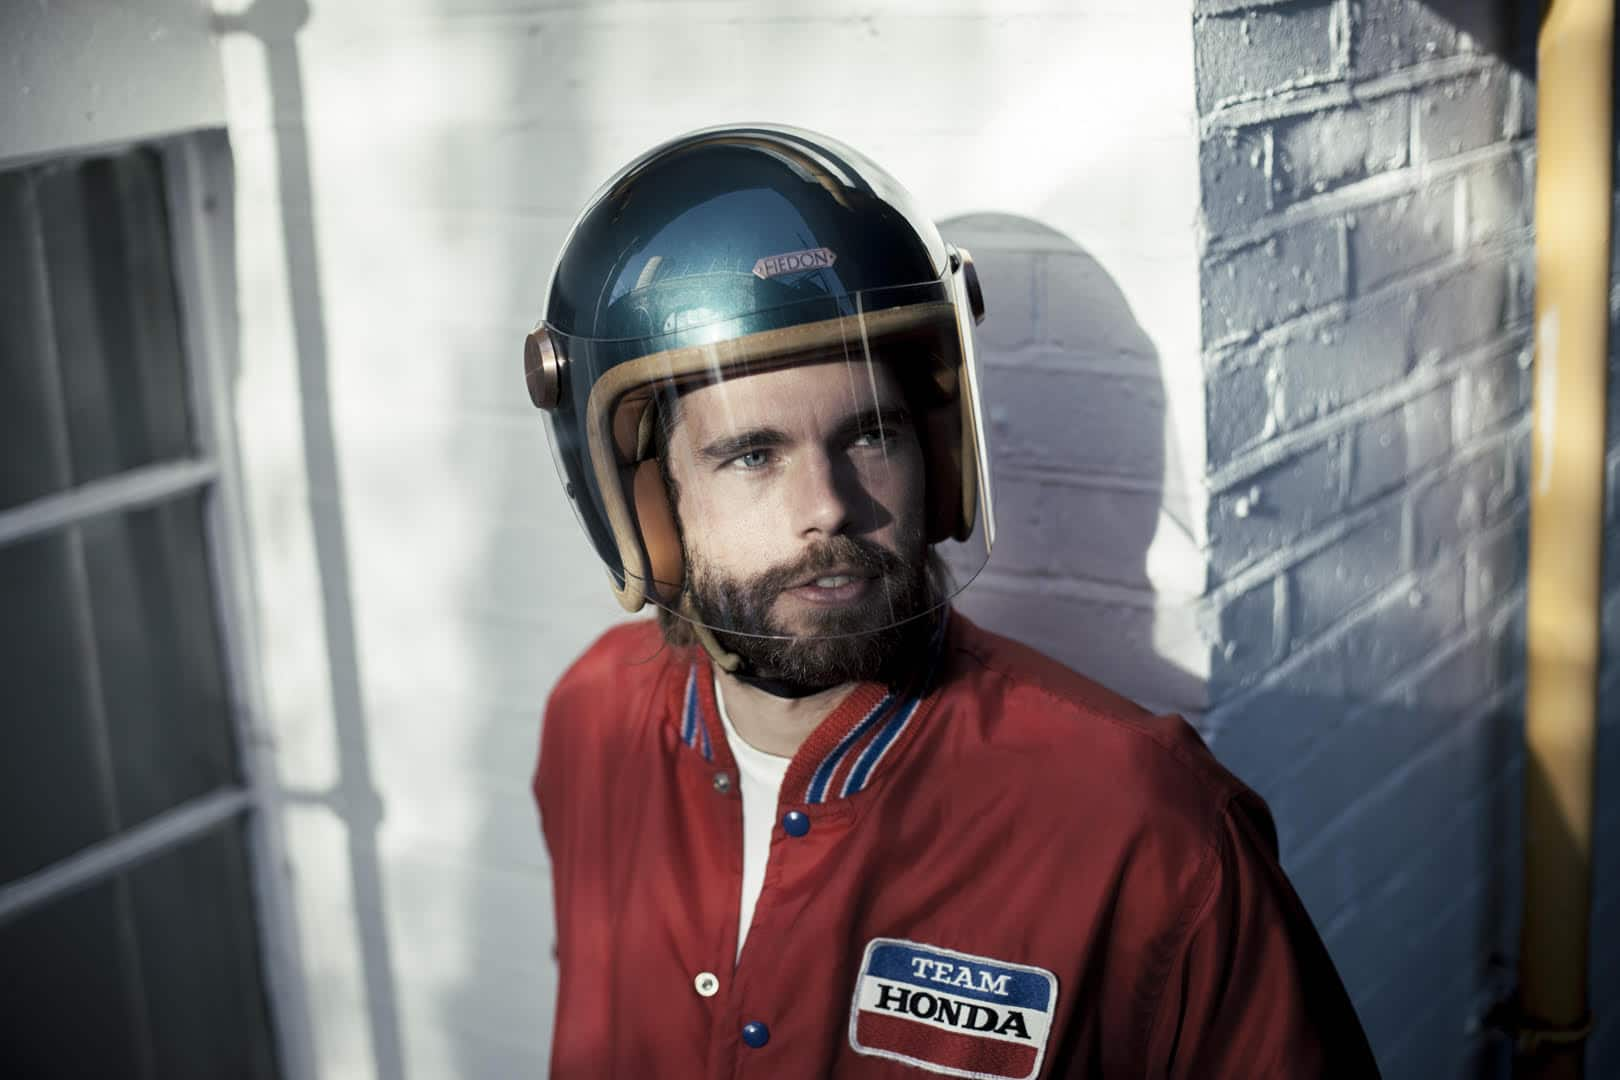 10 Vintage Motorcycle Helmets For Retro Inspired Style Man Of Many